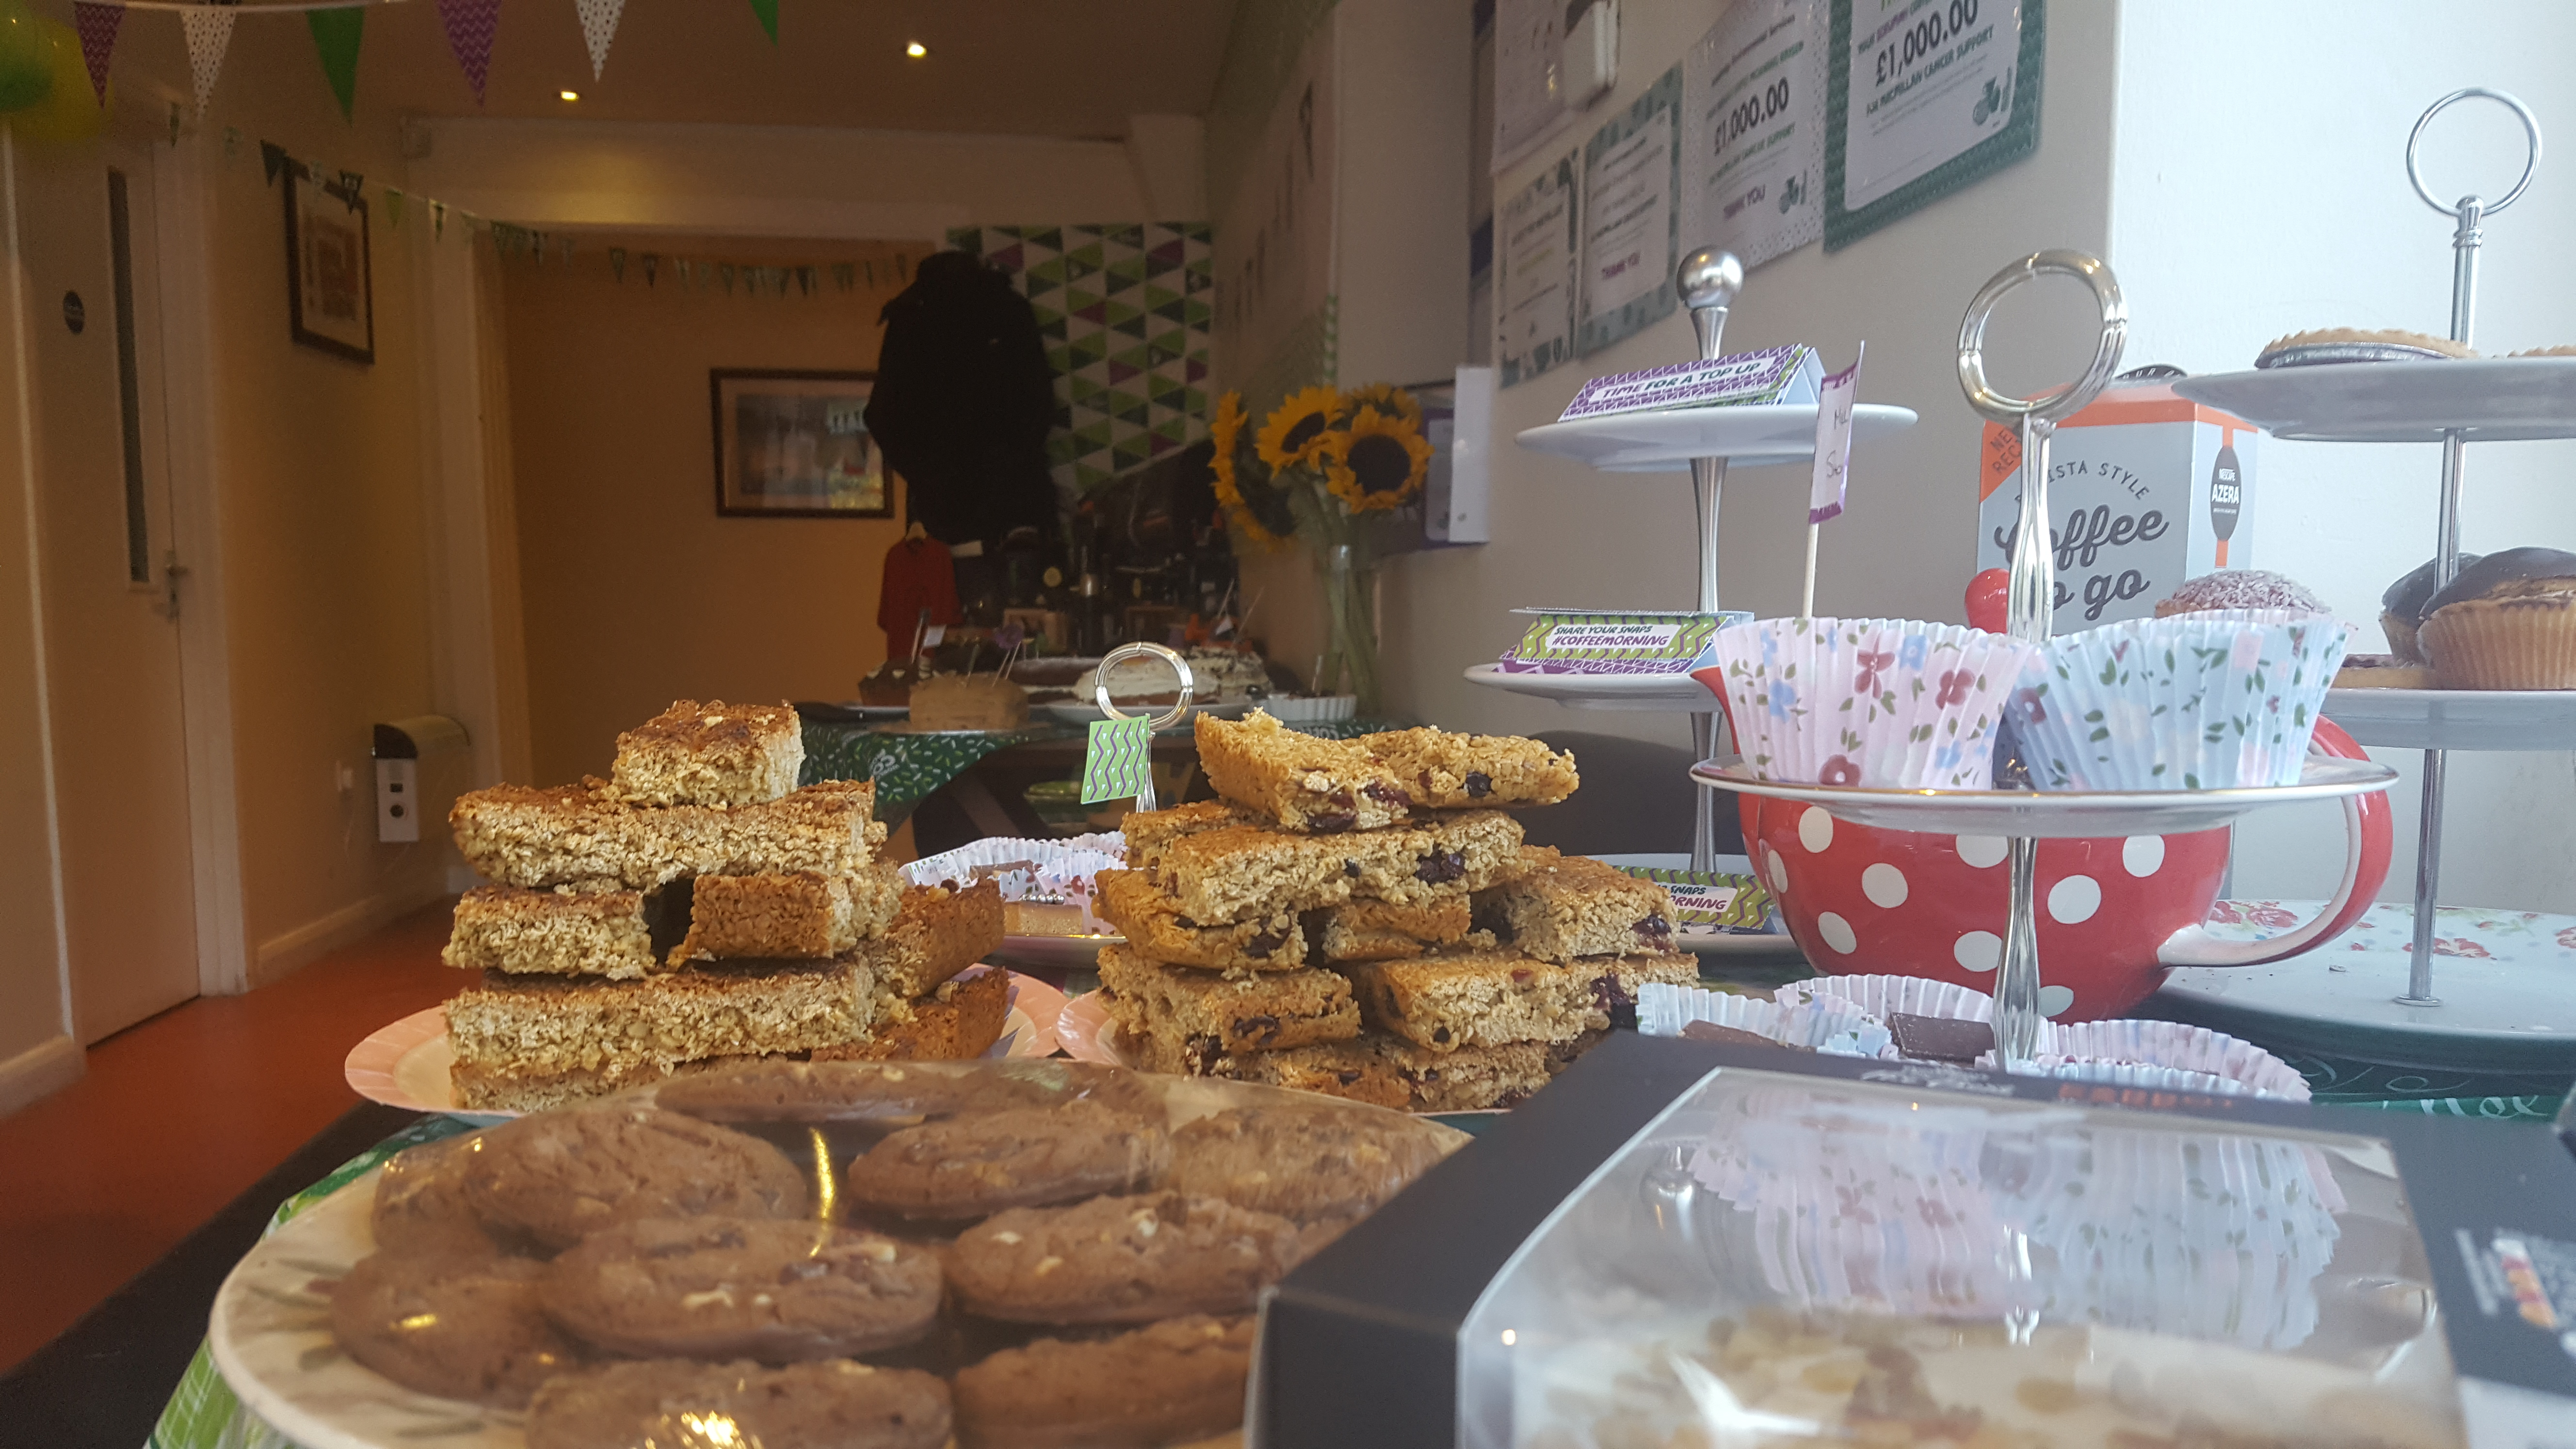 Cakes ready for Macmillan coffee morning